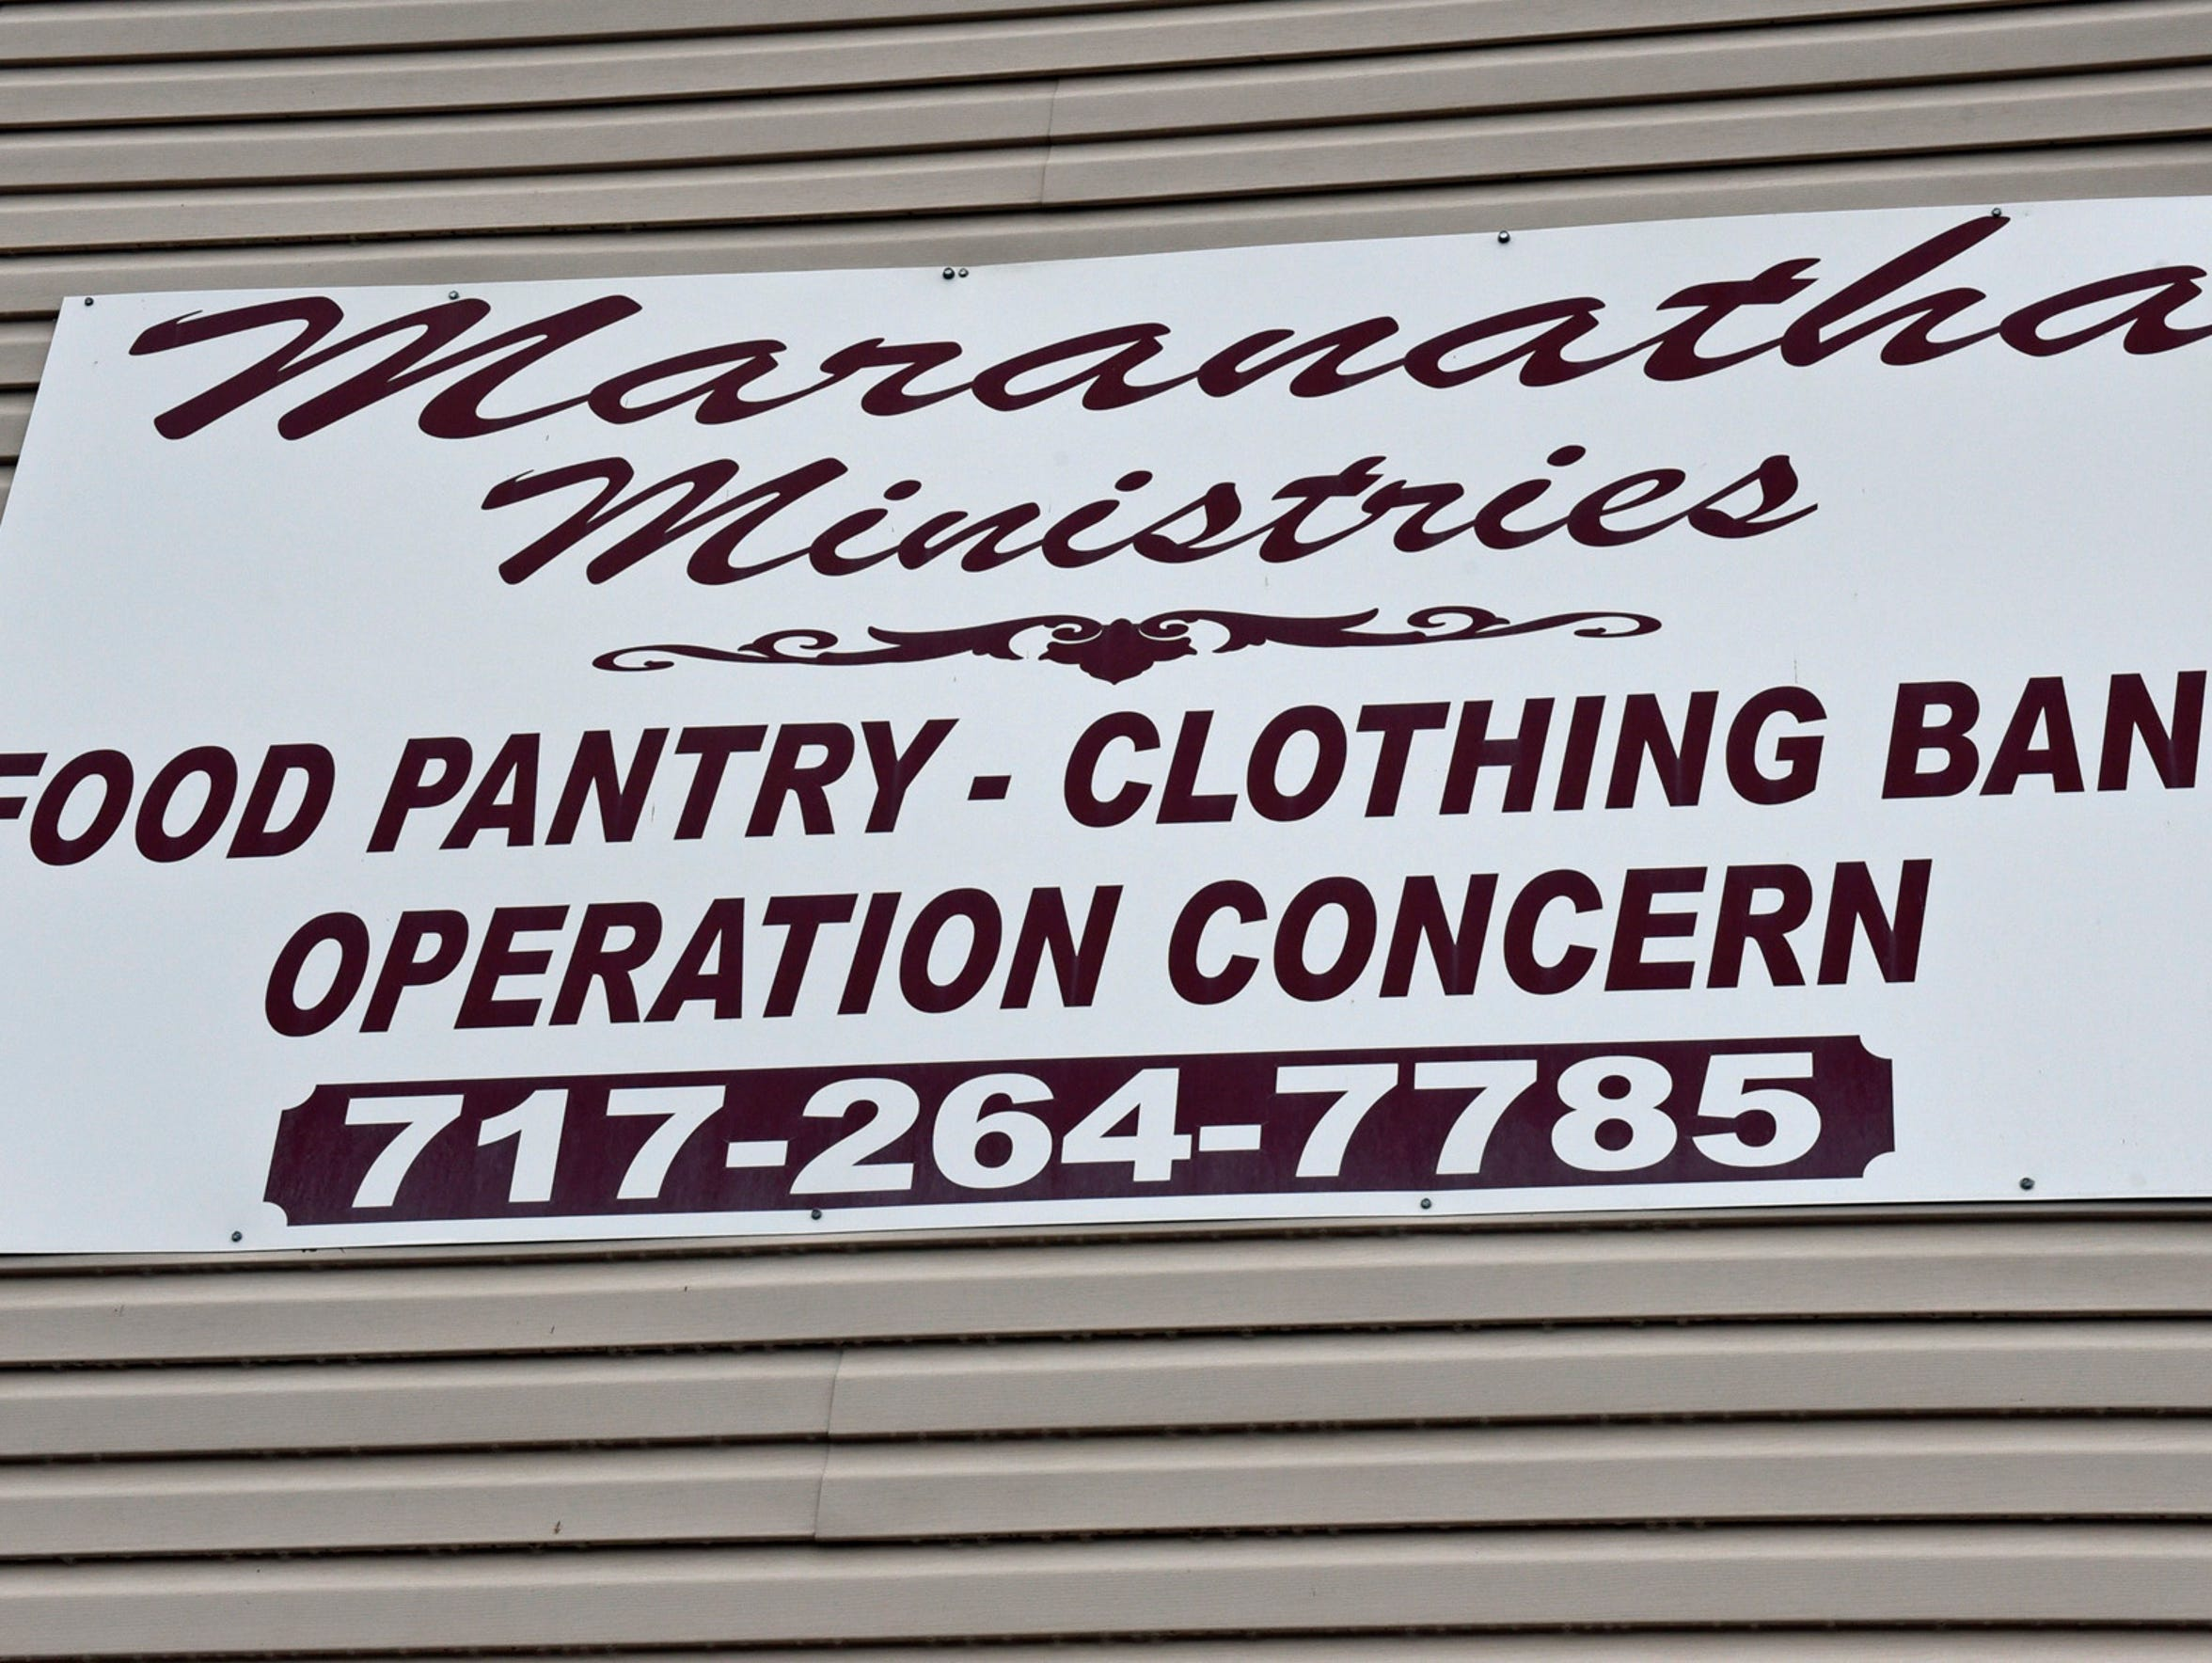 In addition to a food pantry, Maranatha Ministries,